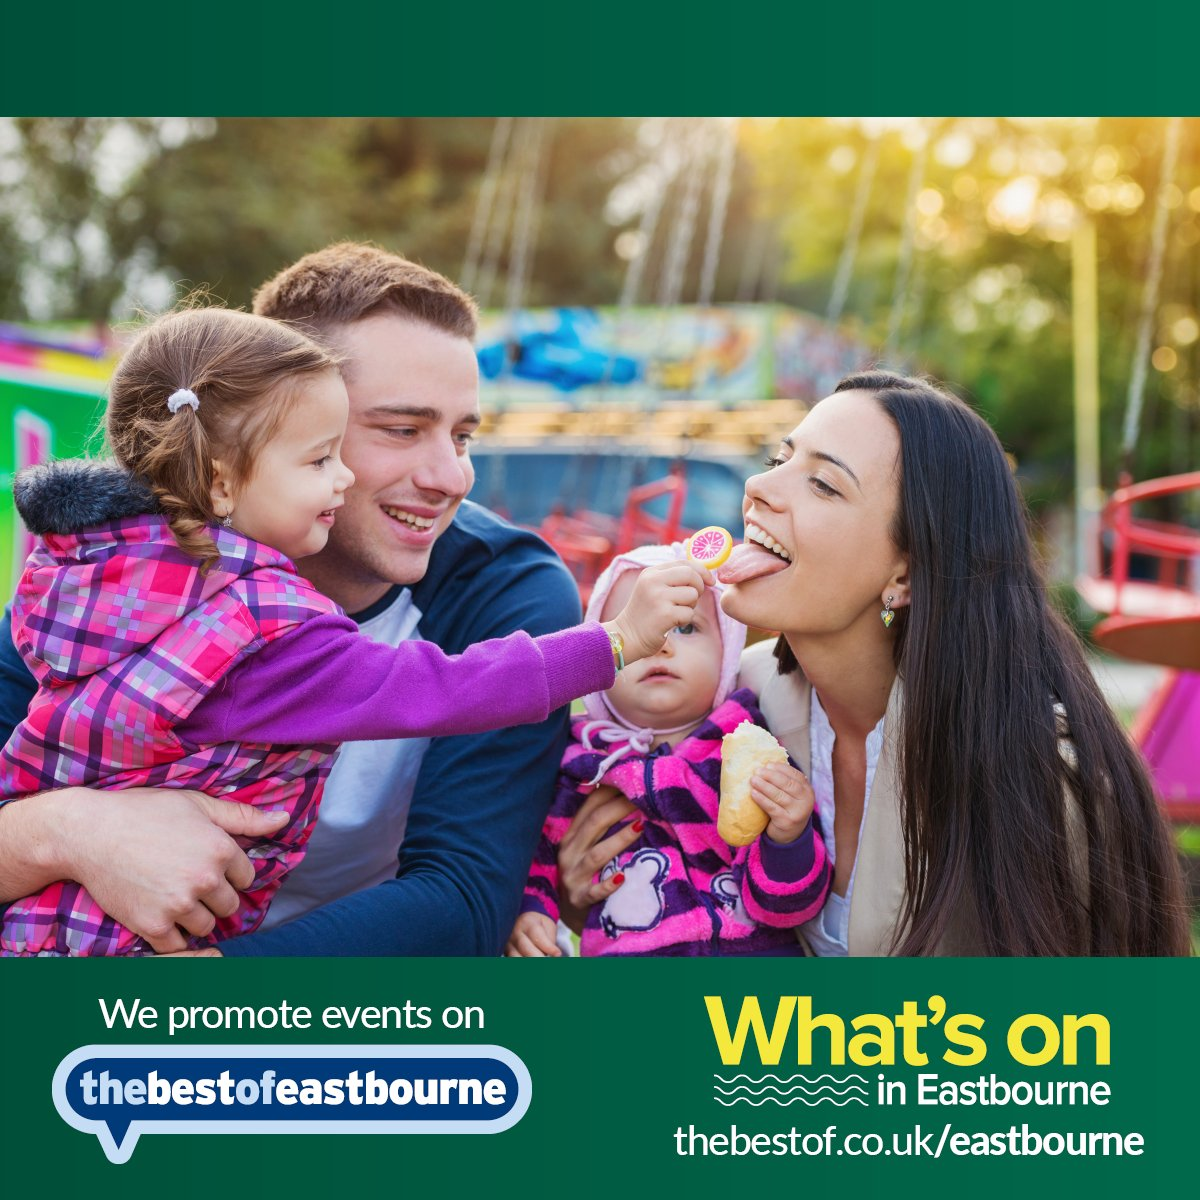 Kids and families love special events, but they can't find them if they don't know about them! Be sure to add your events to #BestOfEastbourne   http://j.mp/1QtniIT    #EBevents